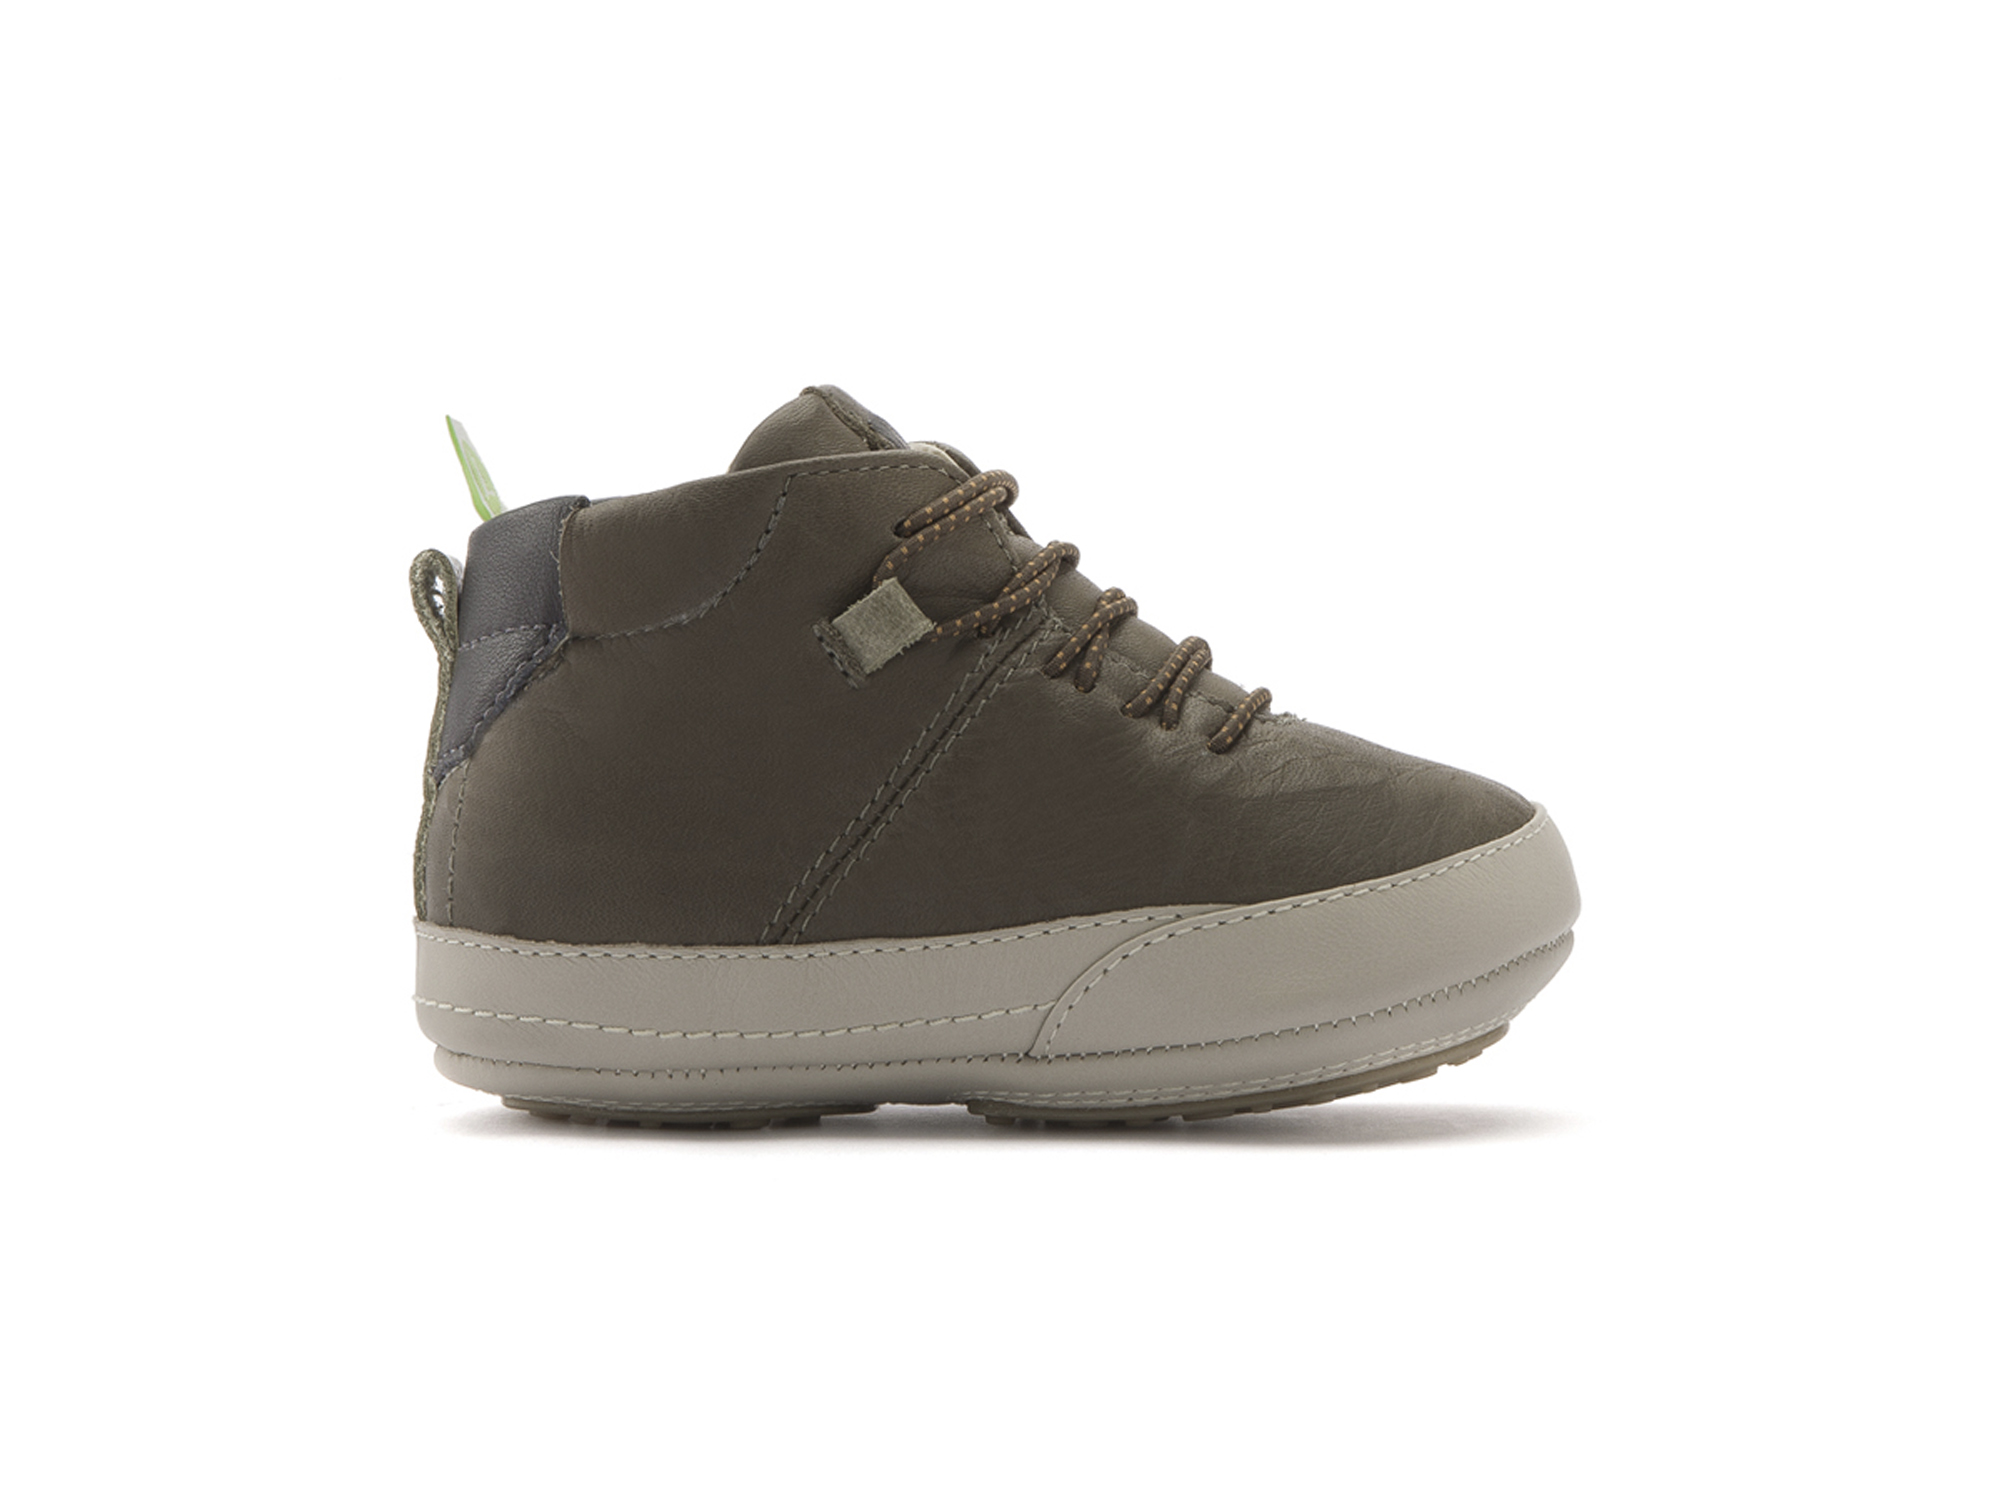 Bota Highlandy Green Crush/ Pumice Baby 0 à 2 anos - 1